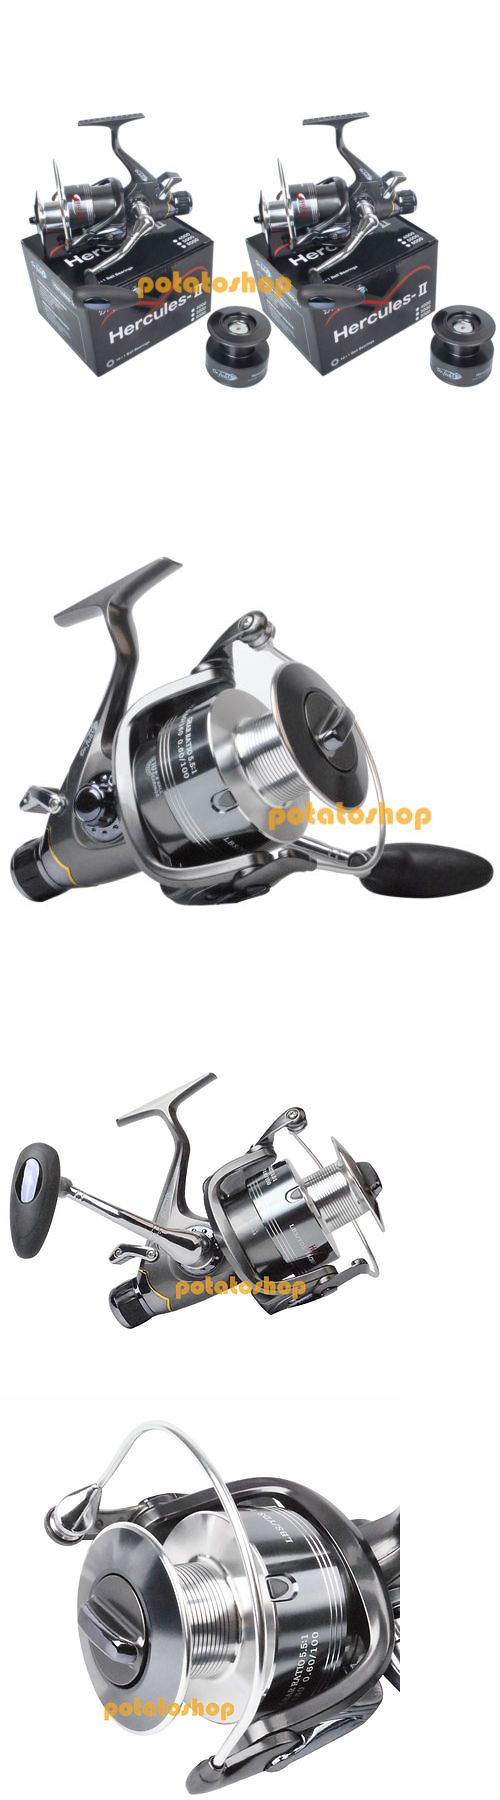 Spinning Reels 36147: Lot 2 10+1 Bb Saltwater Kayak Fishing Spinning Reel Bait-Feeder Freshwater 5.5:1 -> BUY IT NOW ONLY: $65.79 on eBay!